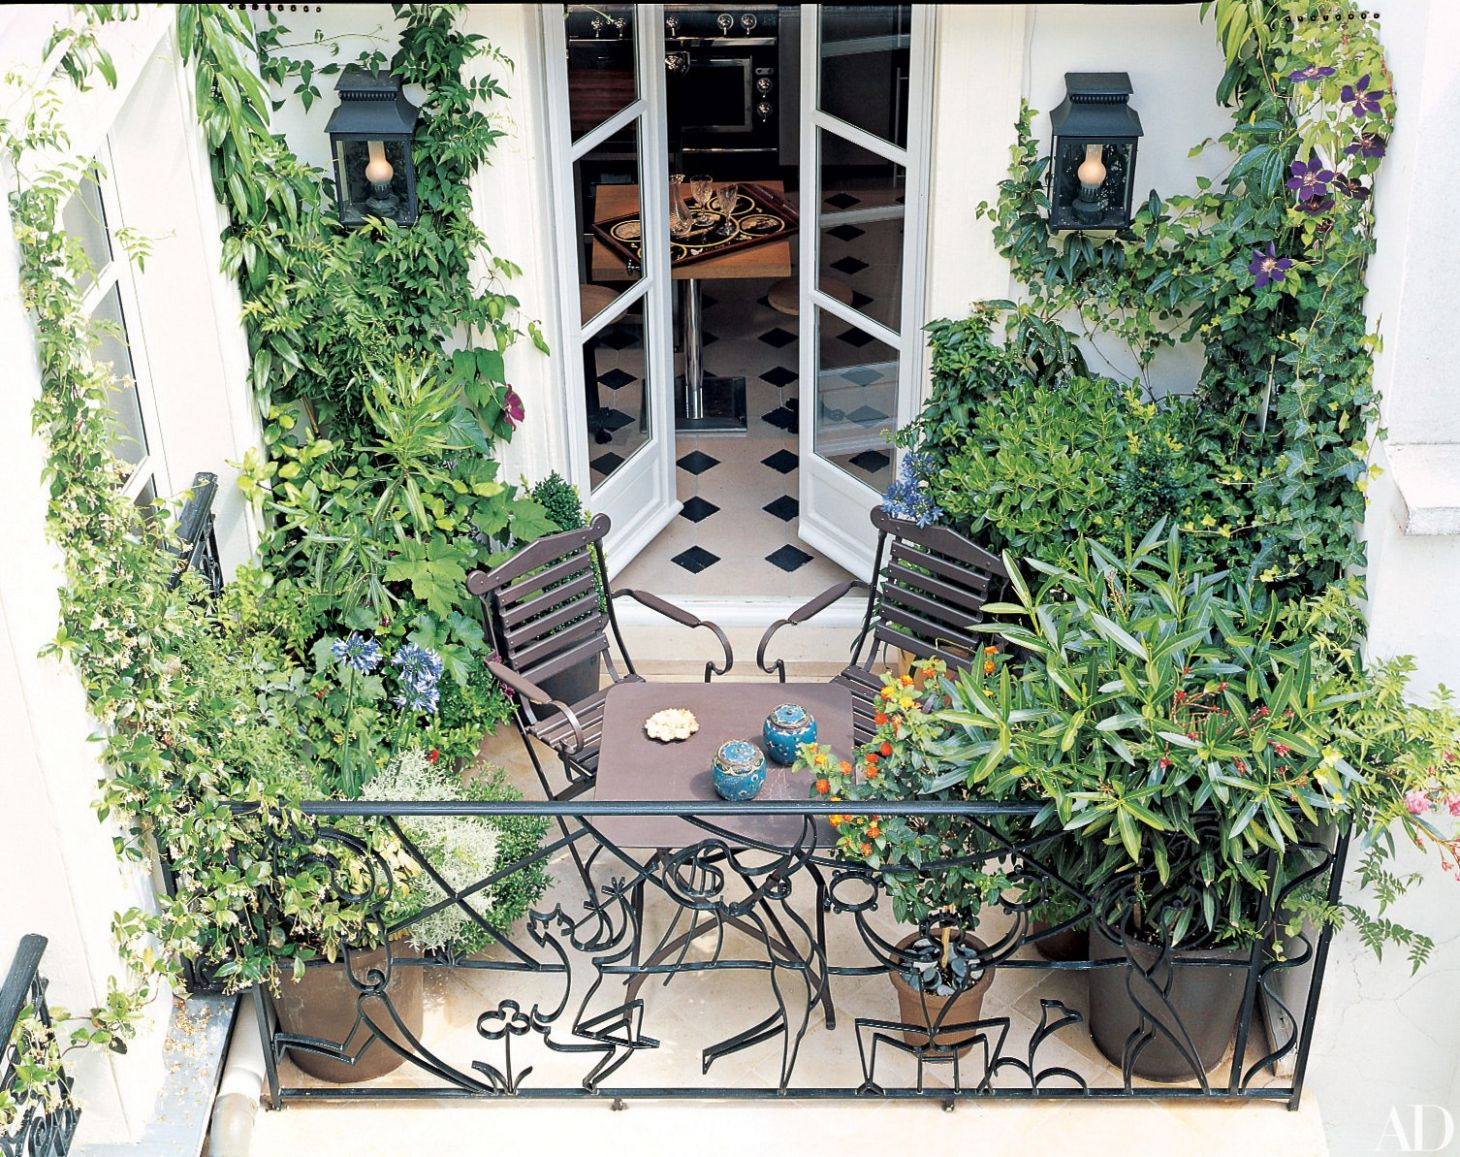 8 Cozy Balcony Ideas and Decor Inspiration   Architectural Digest - balcony remodeling ideas